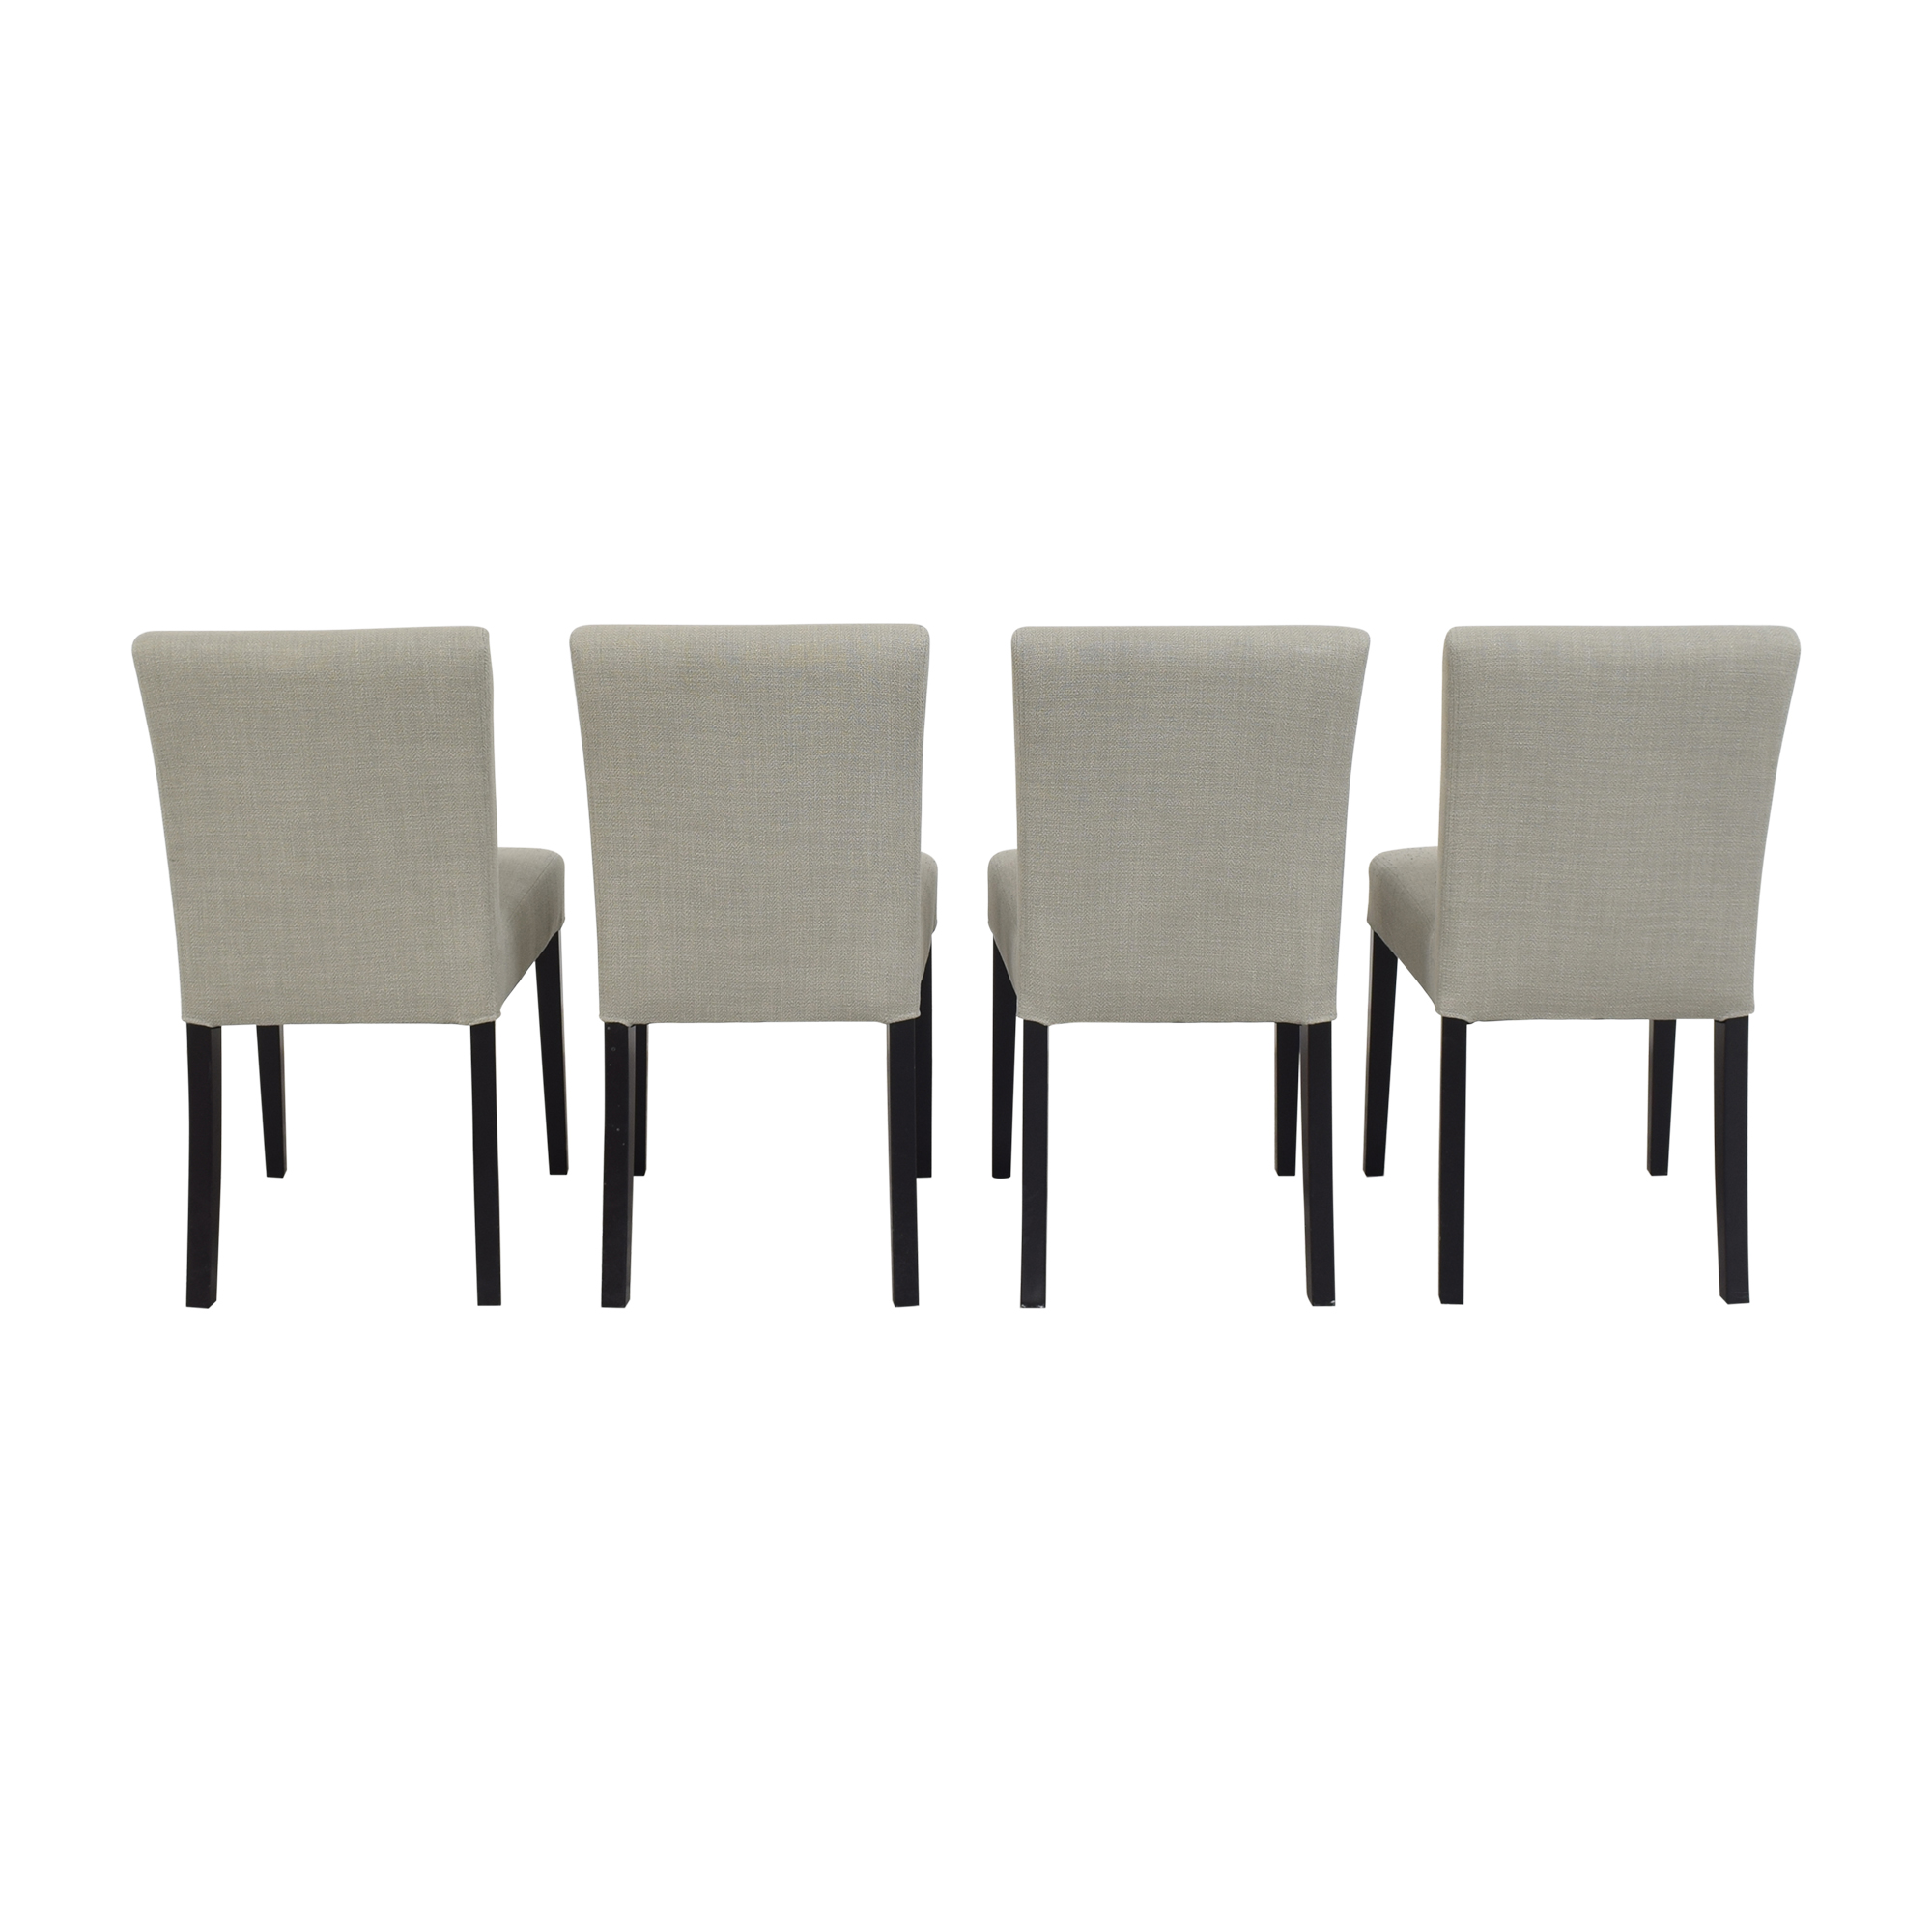 Crate & Barrel Crate & Barrel Miles Upholstered Dining Chairs used